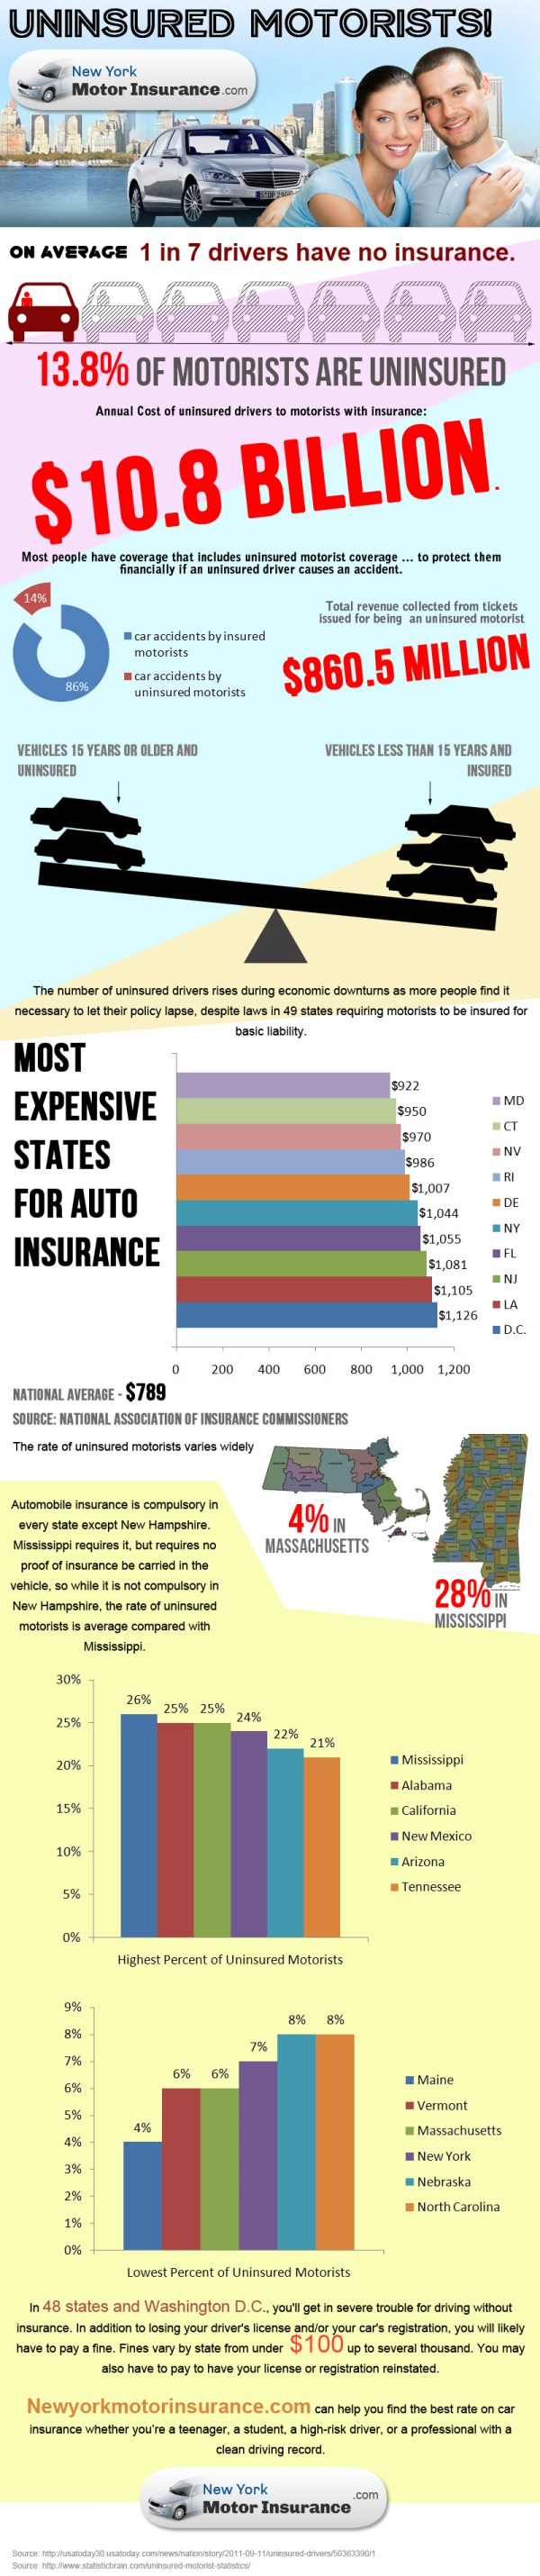 Beware Of Uninsured Motorists - A Look At The Uninsured ...